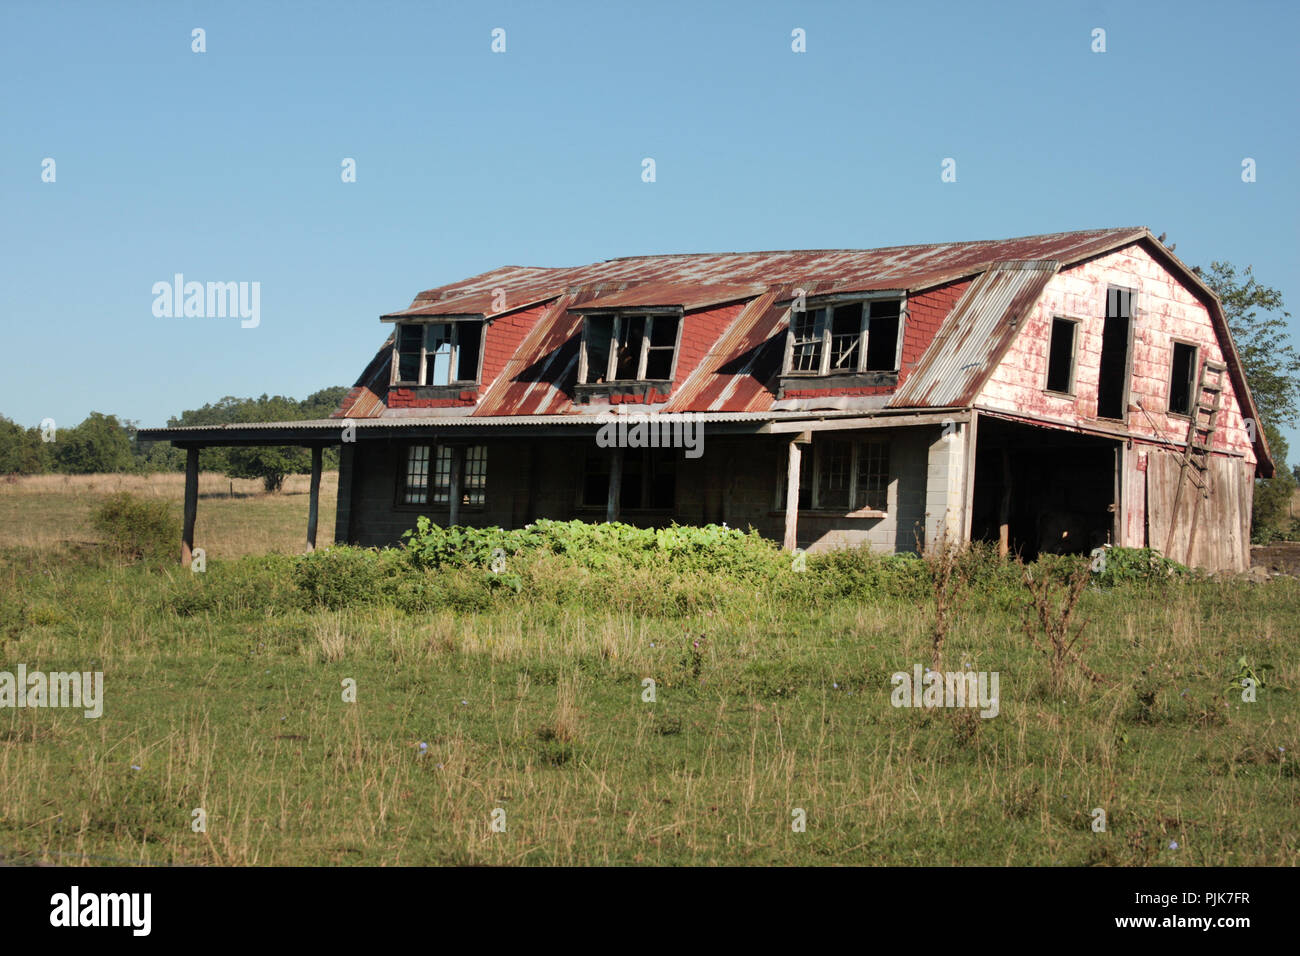 Old abandoned barn in Virginia's countryside - Stock Image